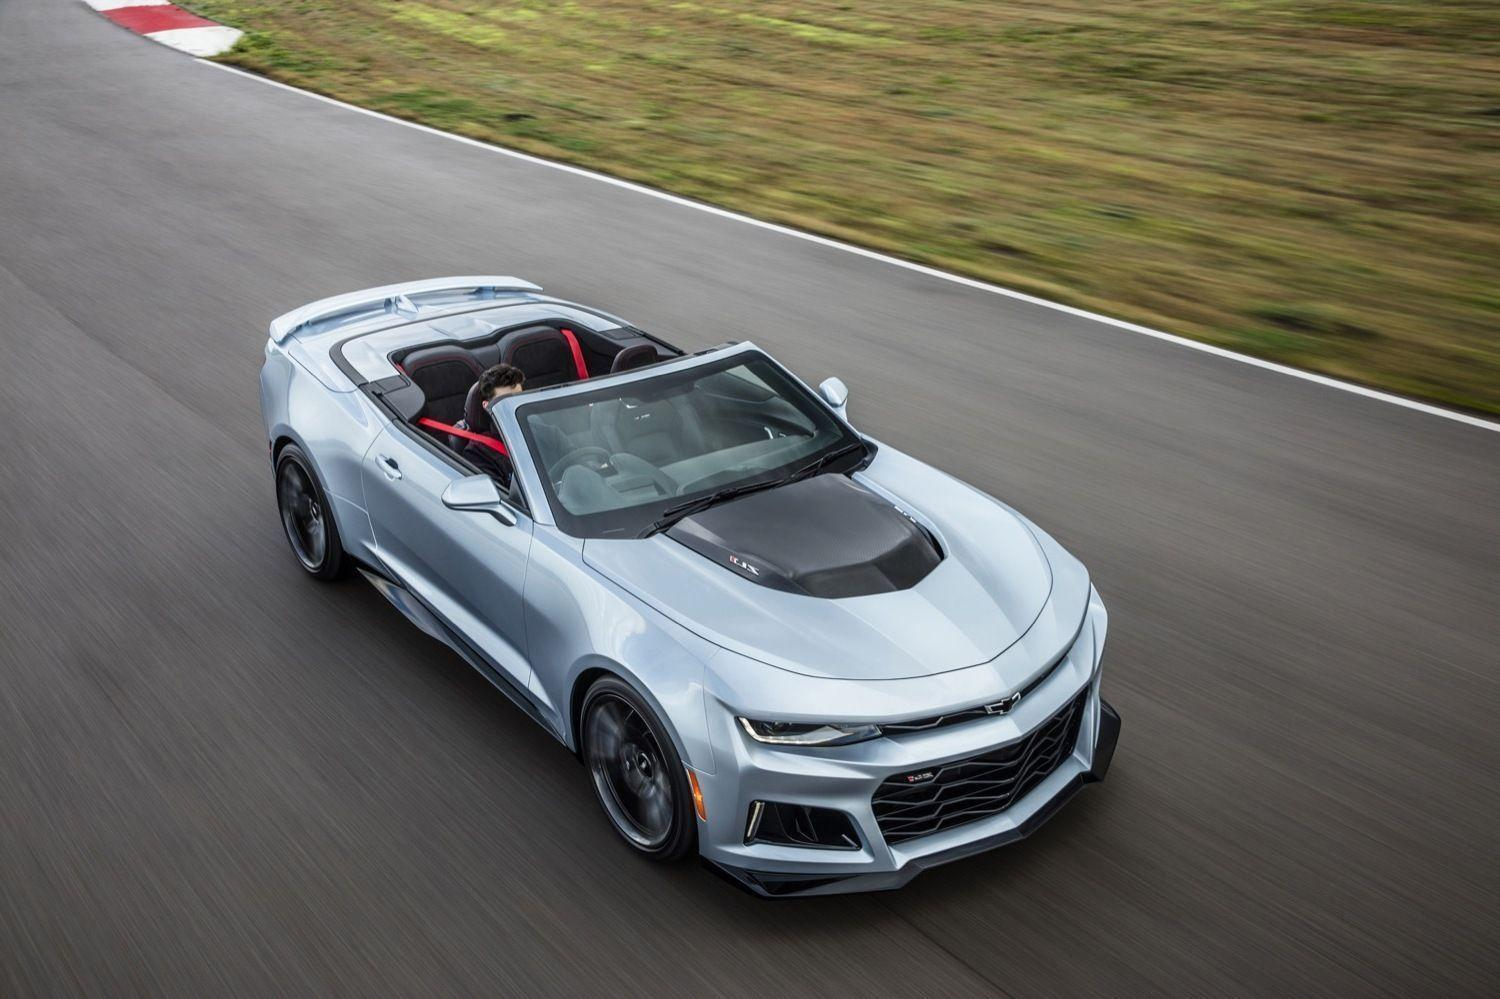 2017 Chevrolet Camaro ZL1 Convertible Desktop Wallpapers